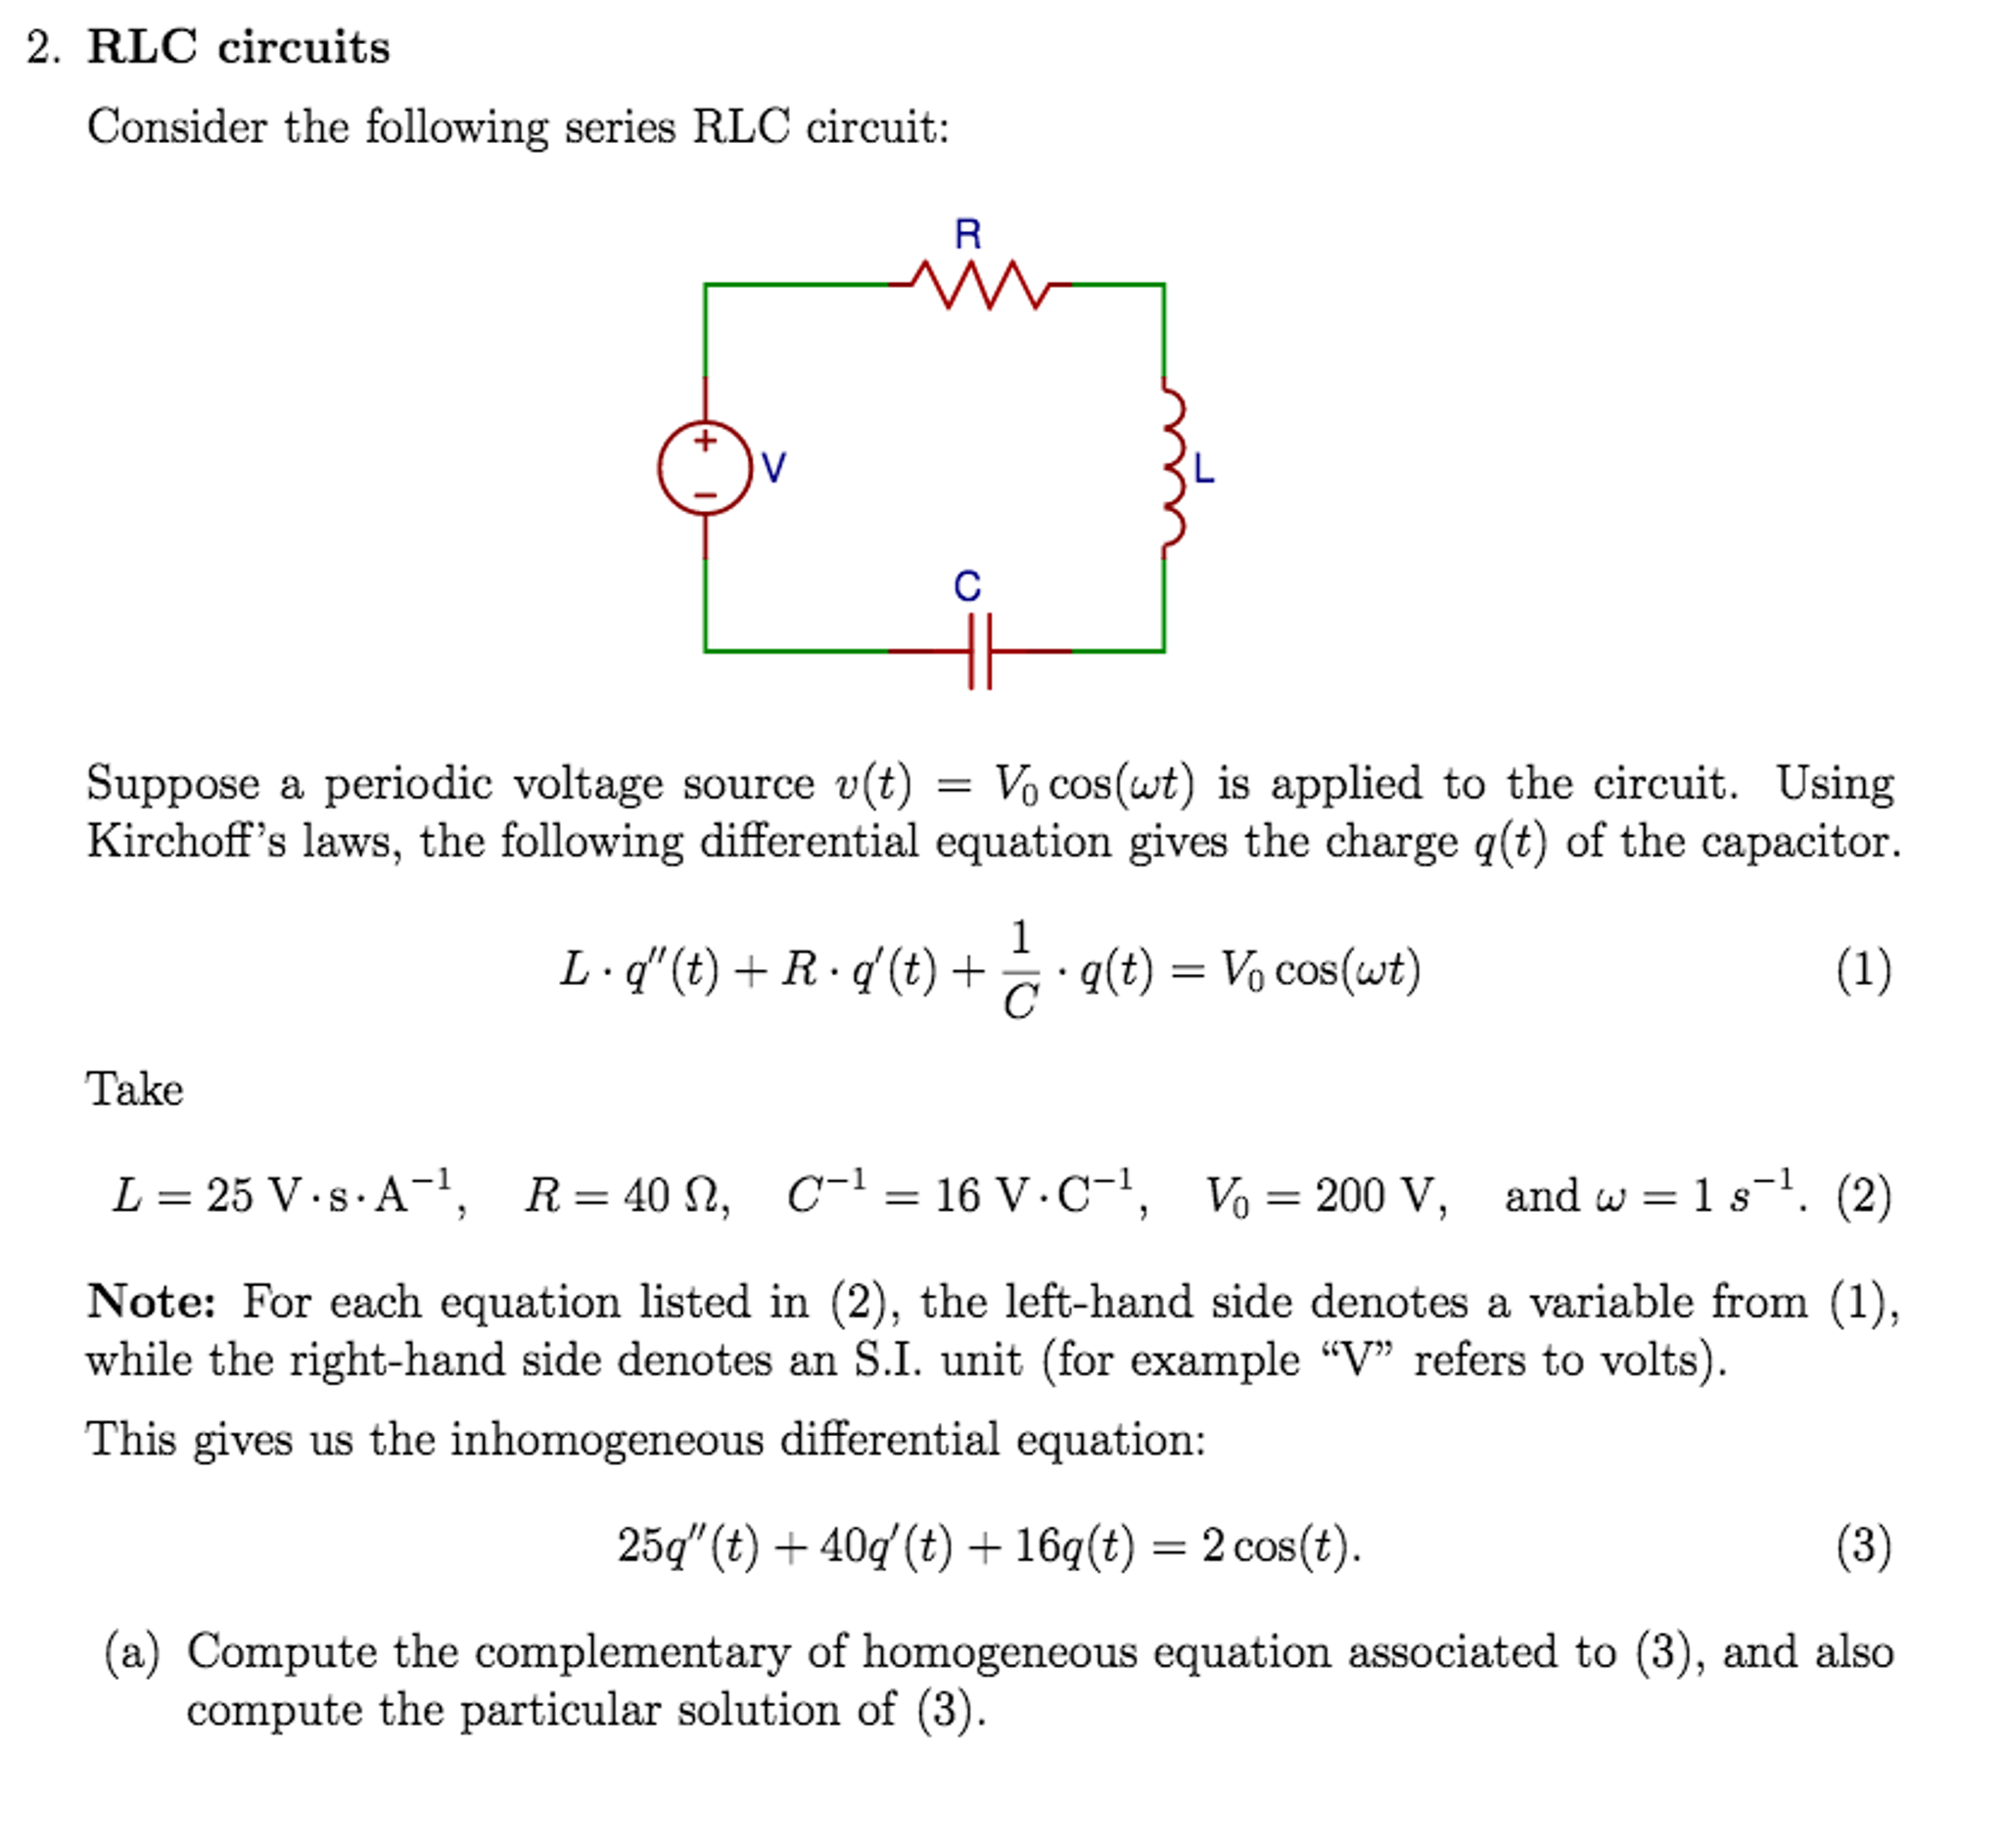 Rlc Series Circuit Questions Guide And Troubleshooting Of Wiring 3 Phase Electrical Phasor Diagram Schematic Solved 2 Circuits Consider The Following Chegg Com Viva Examples